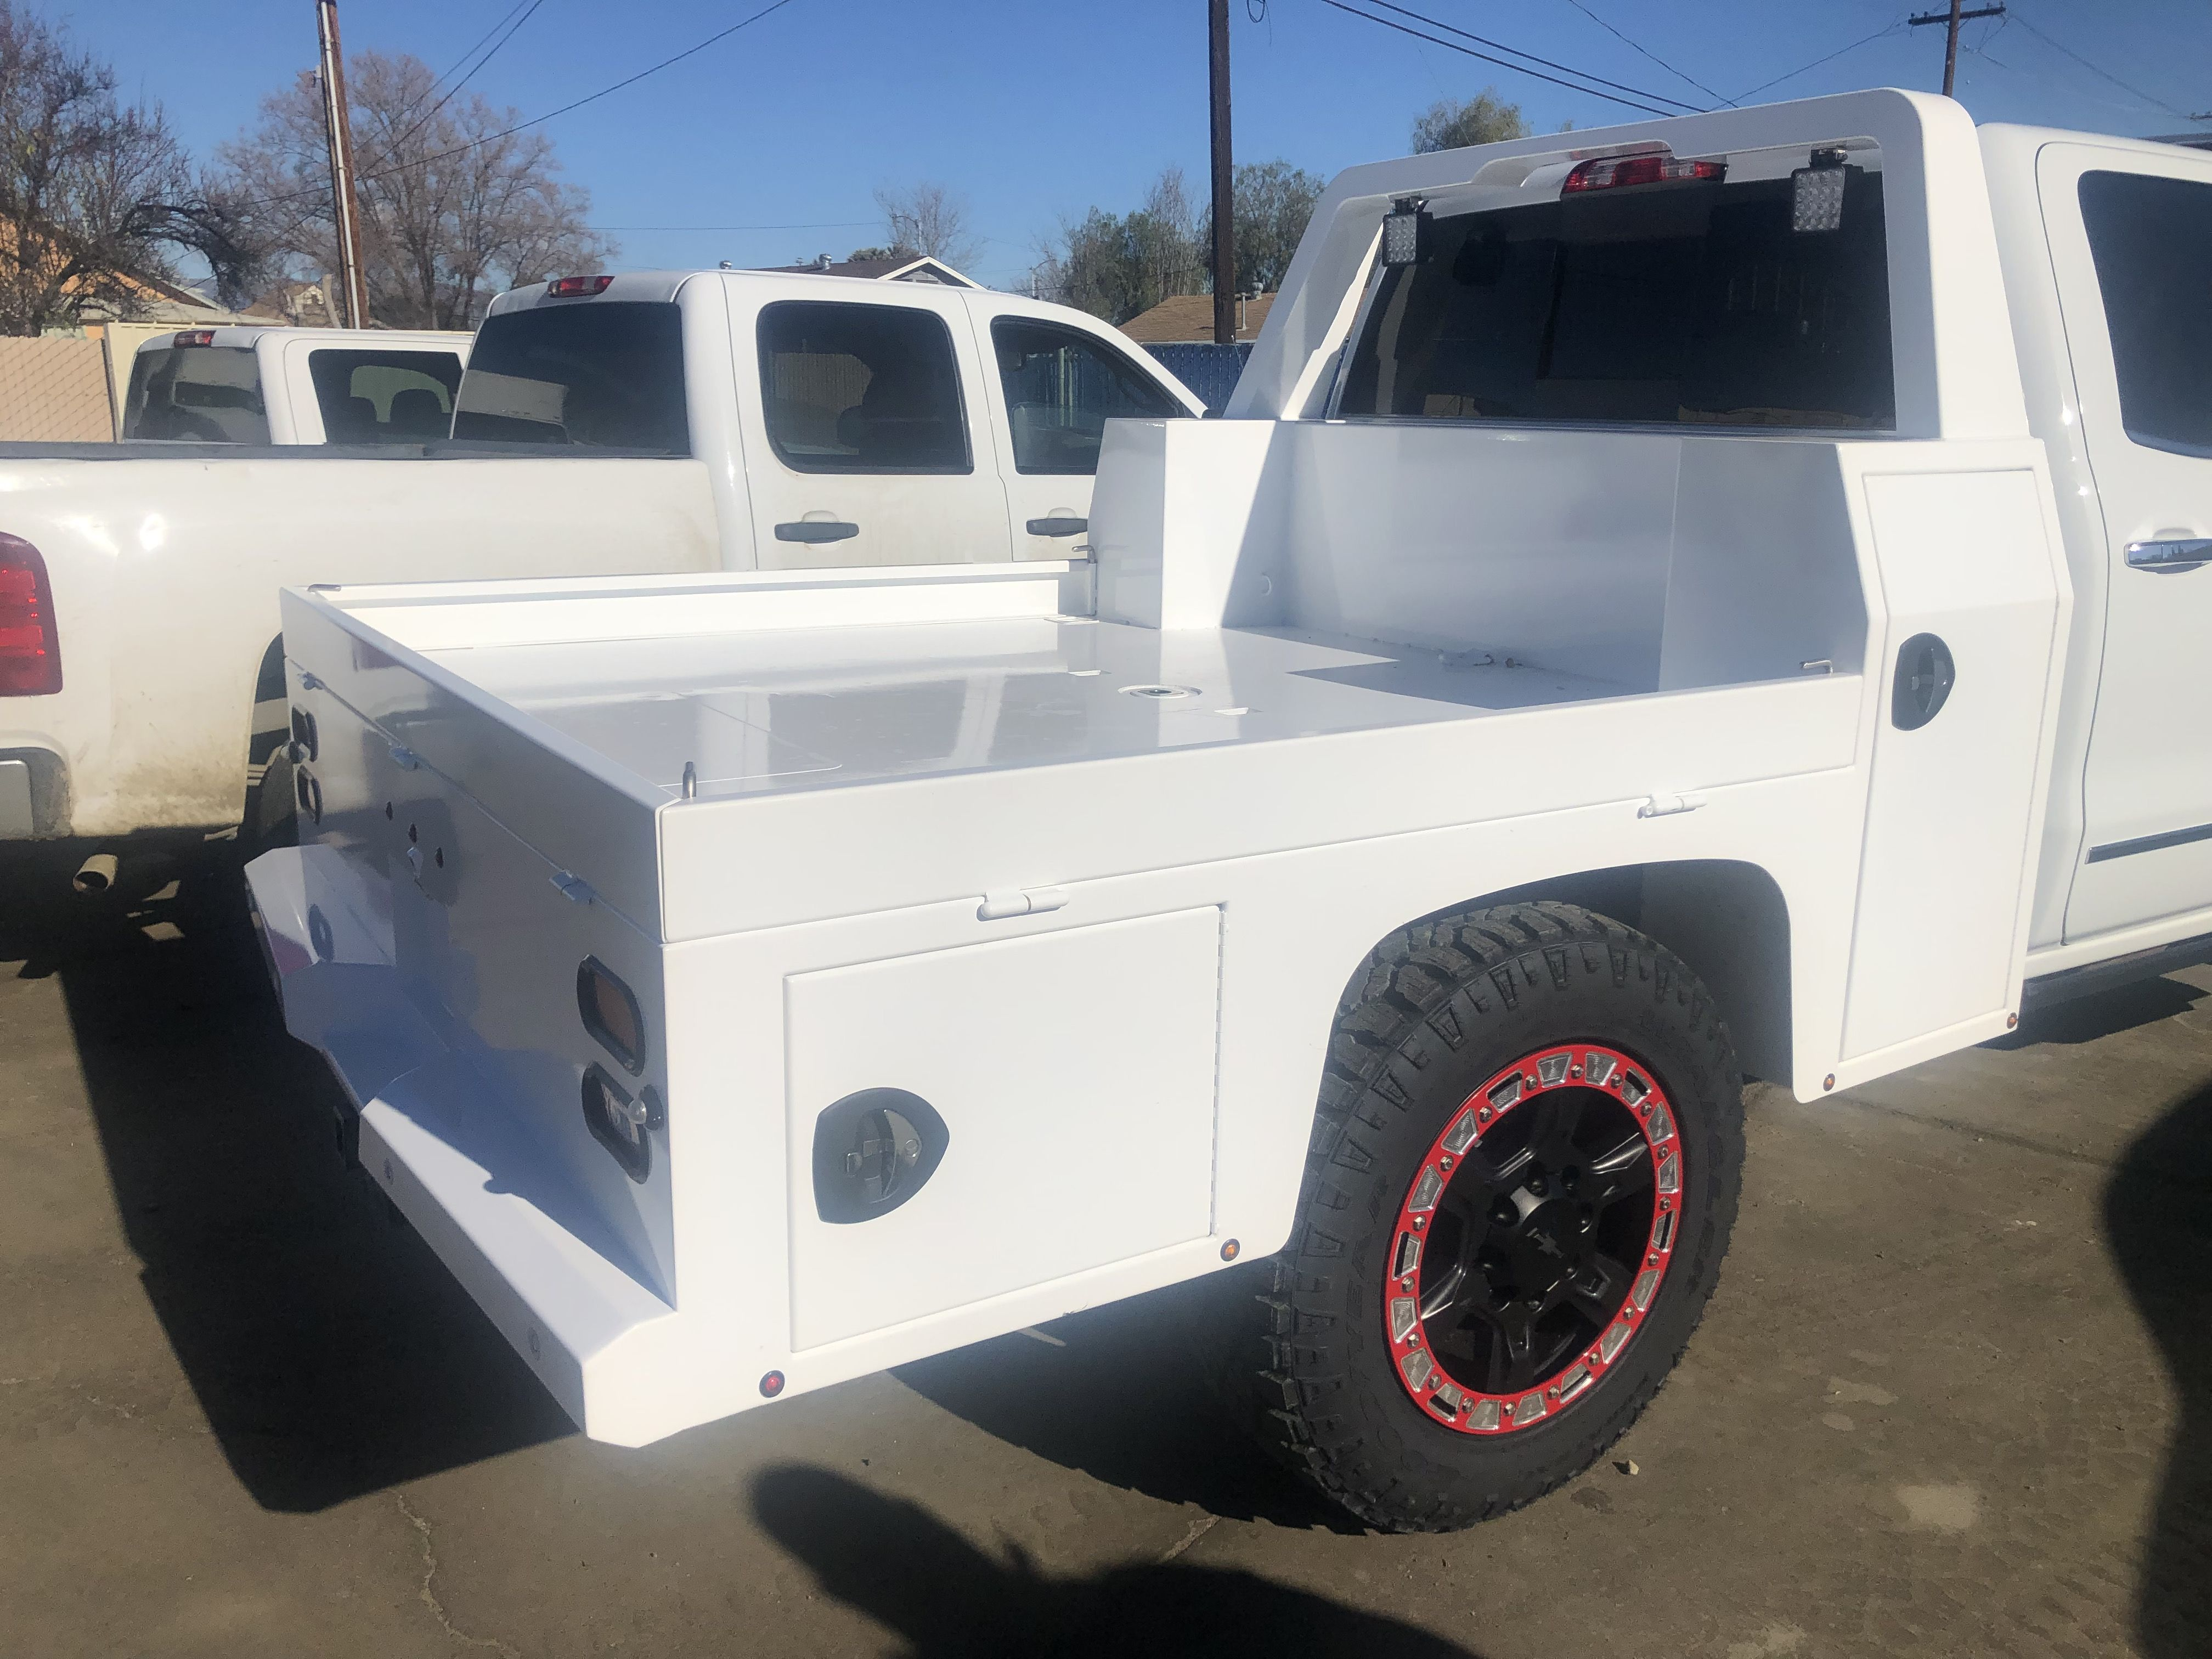 powder coat white Building a house, Flat bed, Home